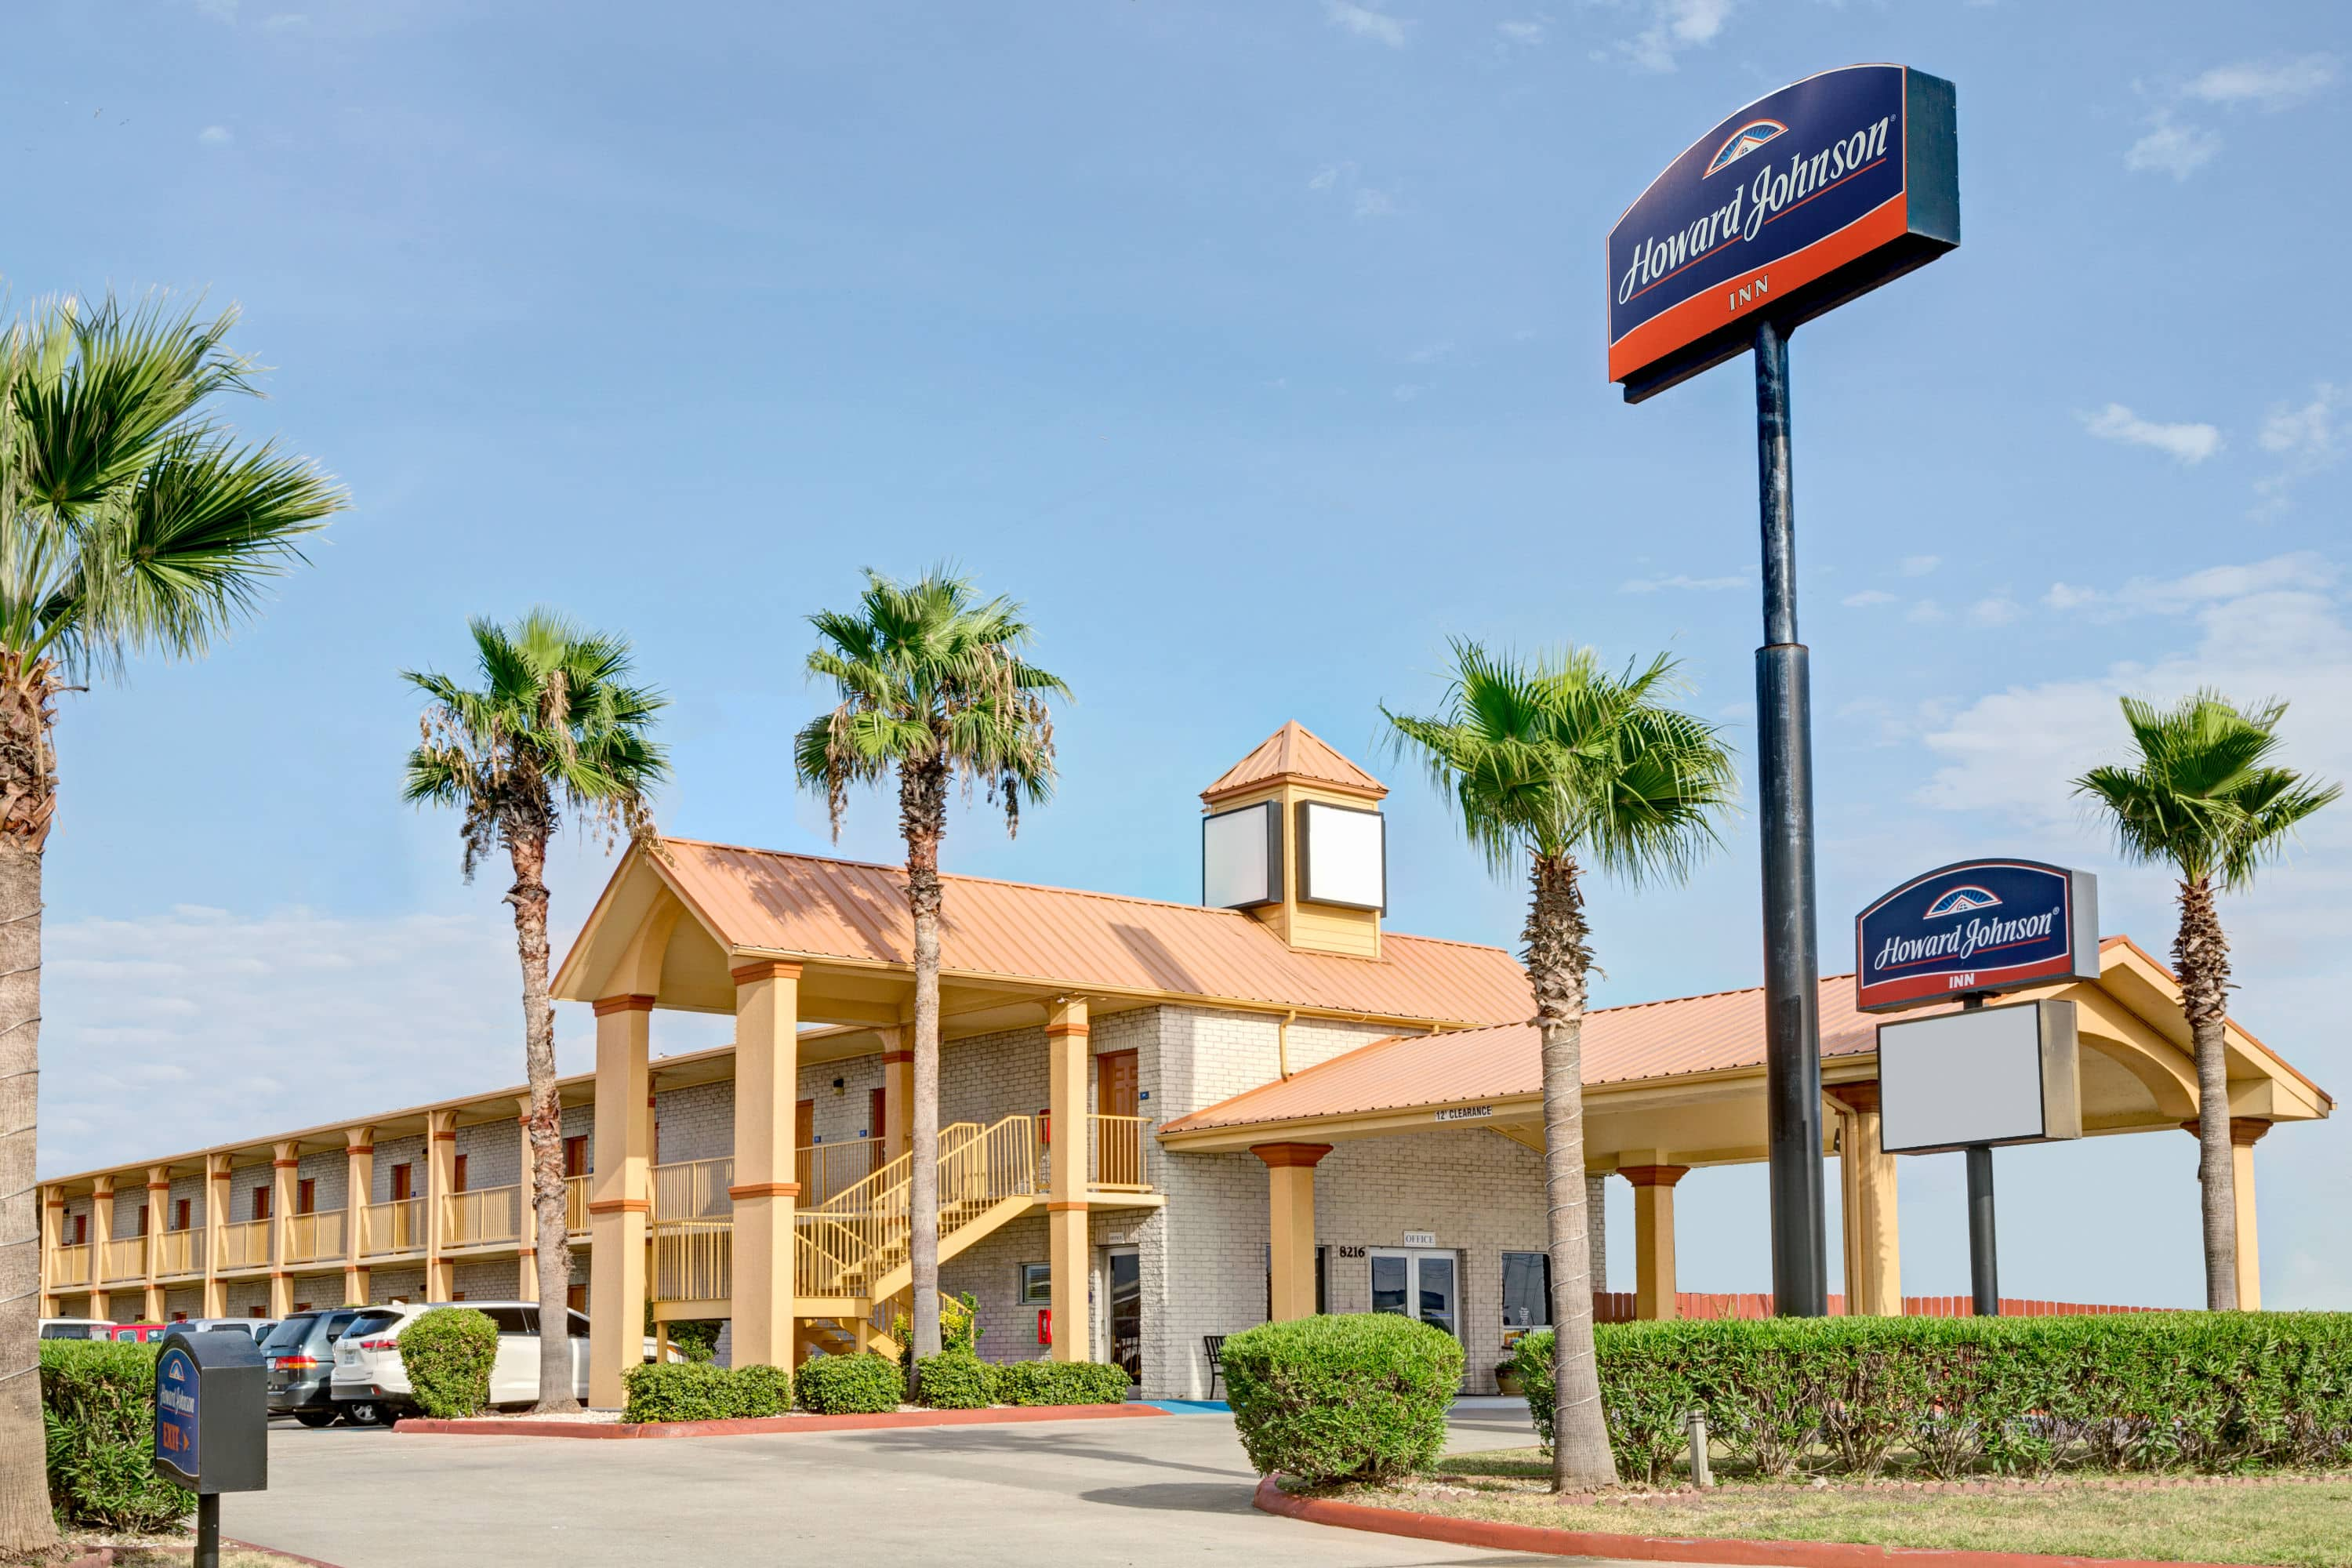 Howard Johnson by Wyndham Galveston Galveston Hotels TX 77554